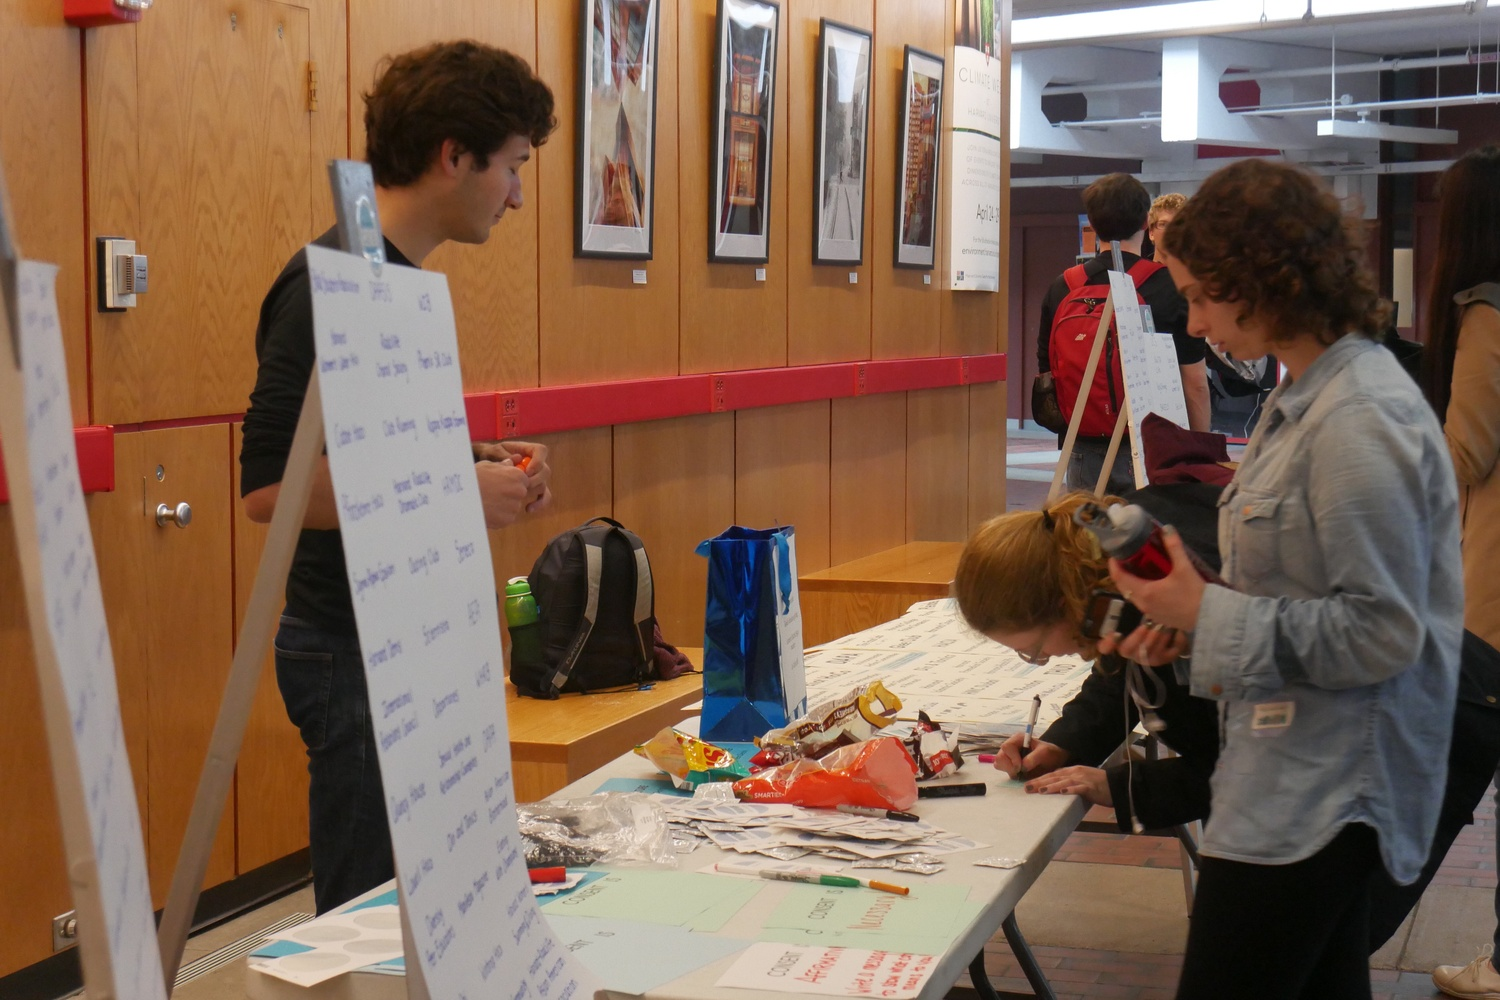 The campaign Harvard Wears Denim took place Wednesday, with individuals and student organizations pledging to stand in solidarity with survivors of sexual assault and pledging to confront rape culture. The event was led by the Office of Sexual Assault Prevention and Response (OSAPR) and Consent Advocates & Relationship Educators (CARE).